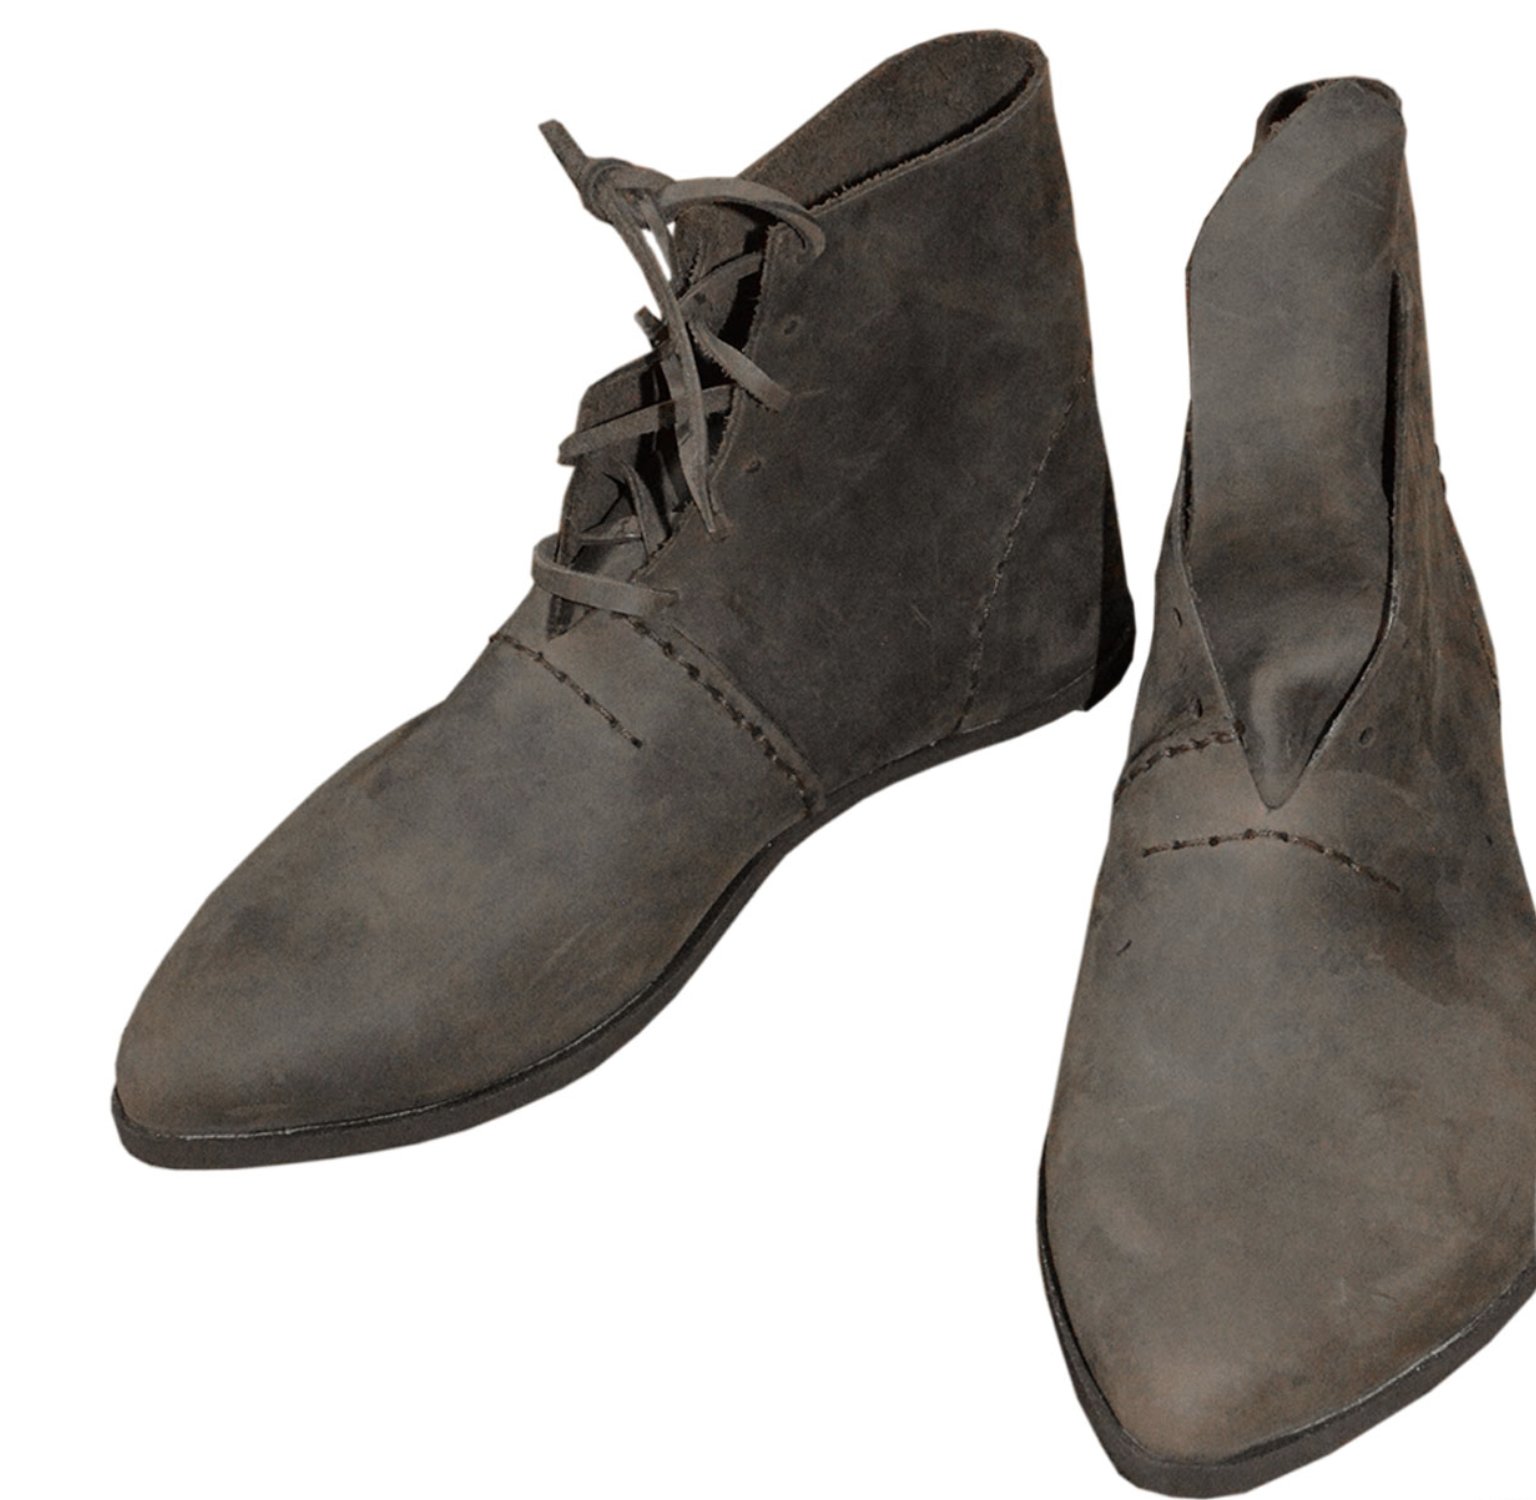 Chaussures Homme : MSS1437 - 170 €